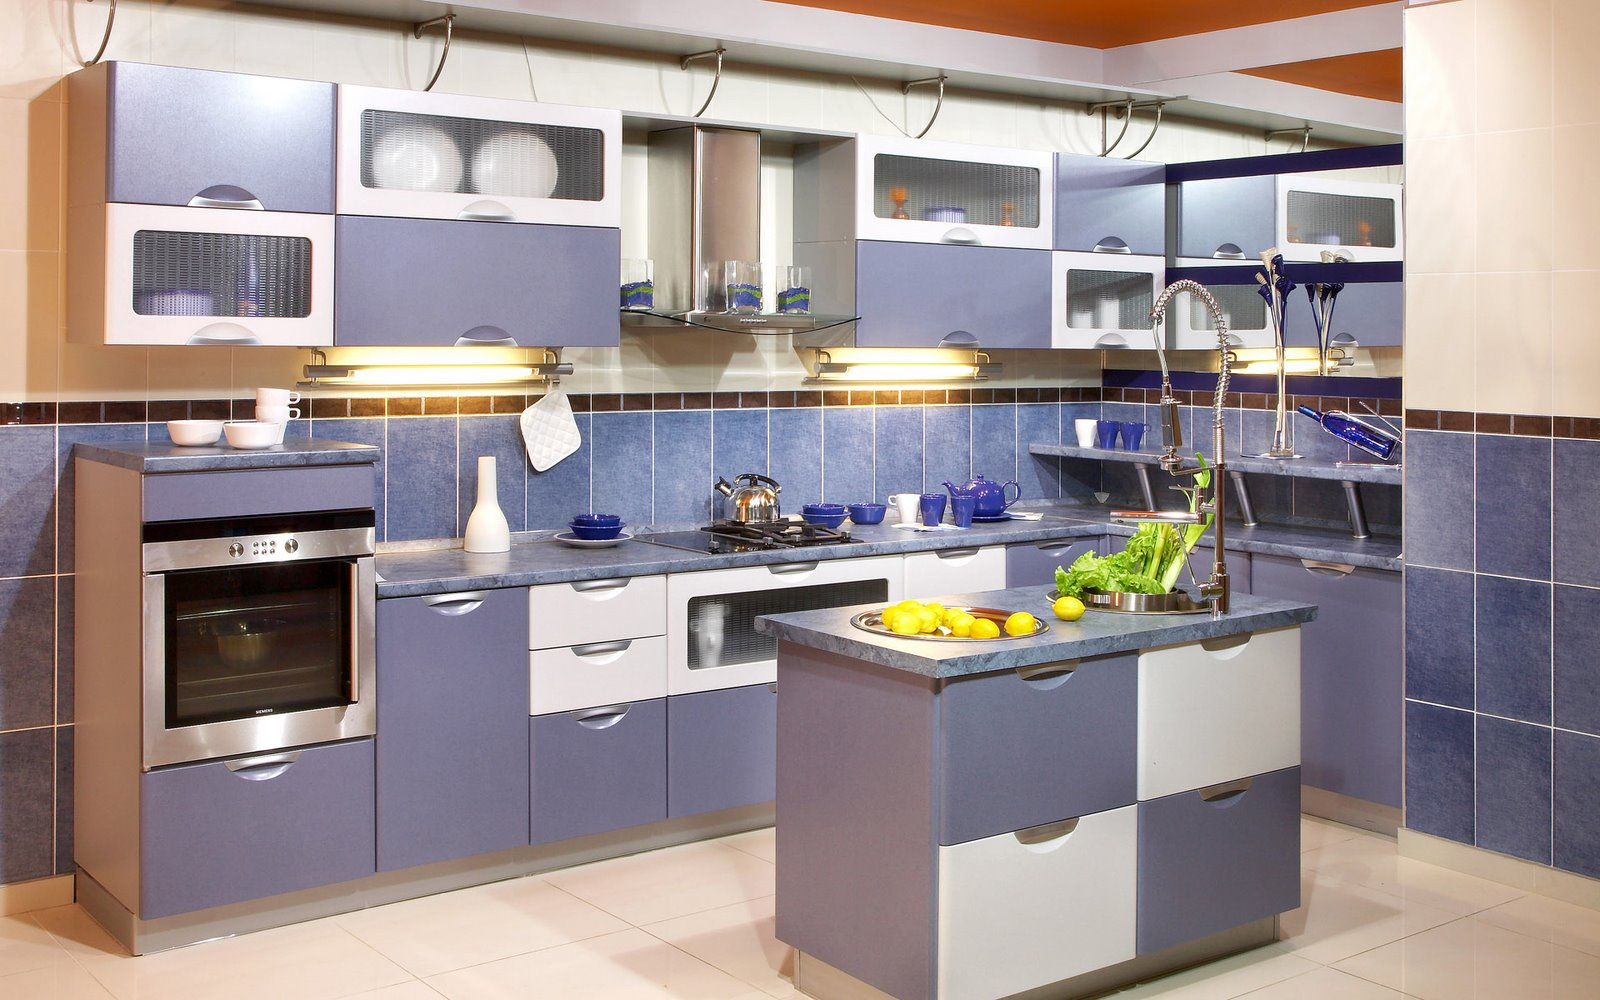 blue-kitchen-design-cabinets-island-white-combination-top-caninet-work-space-saver-italian-style